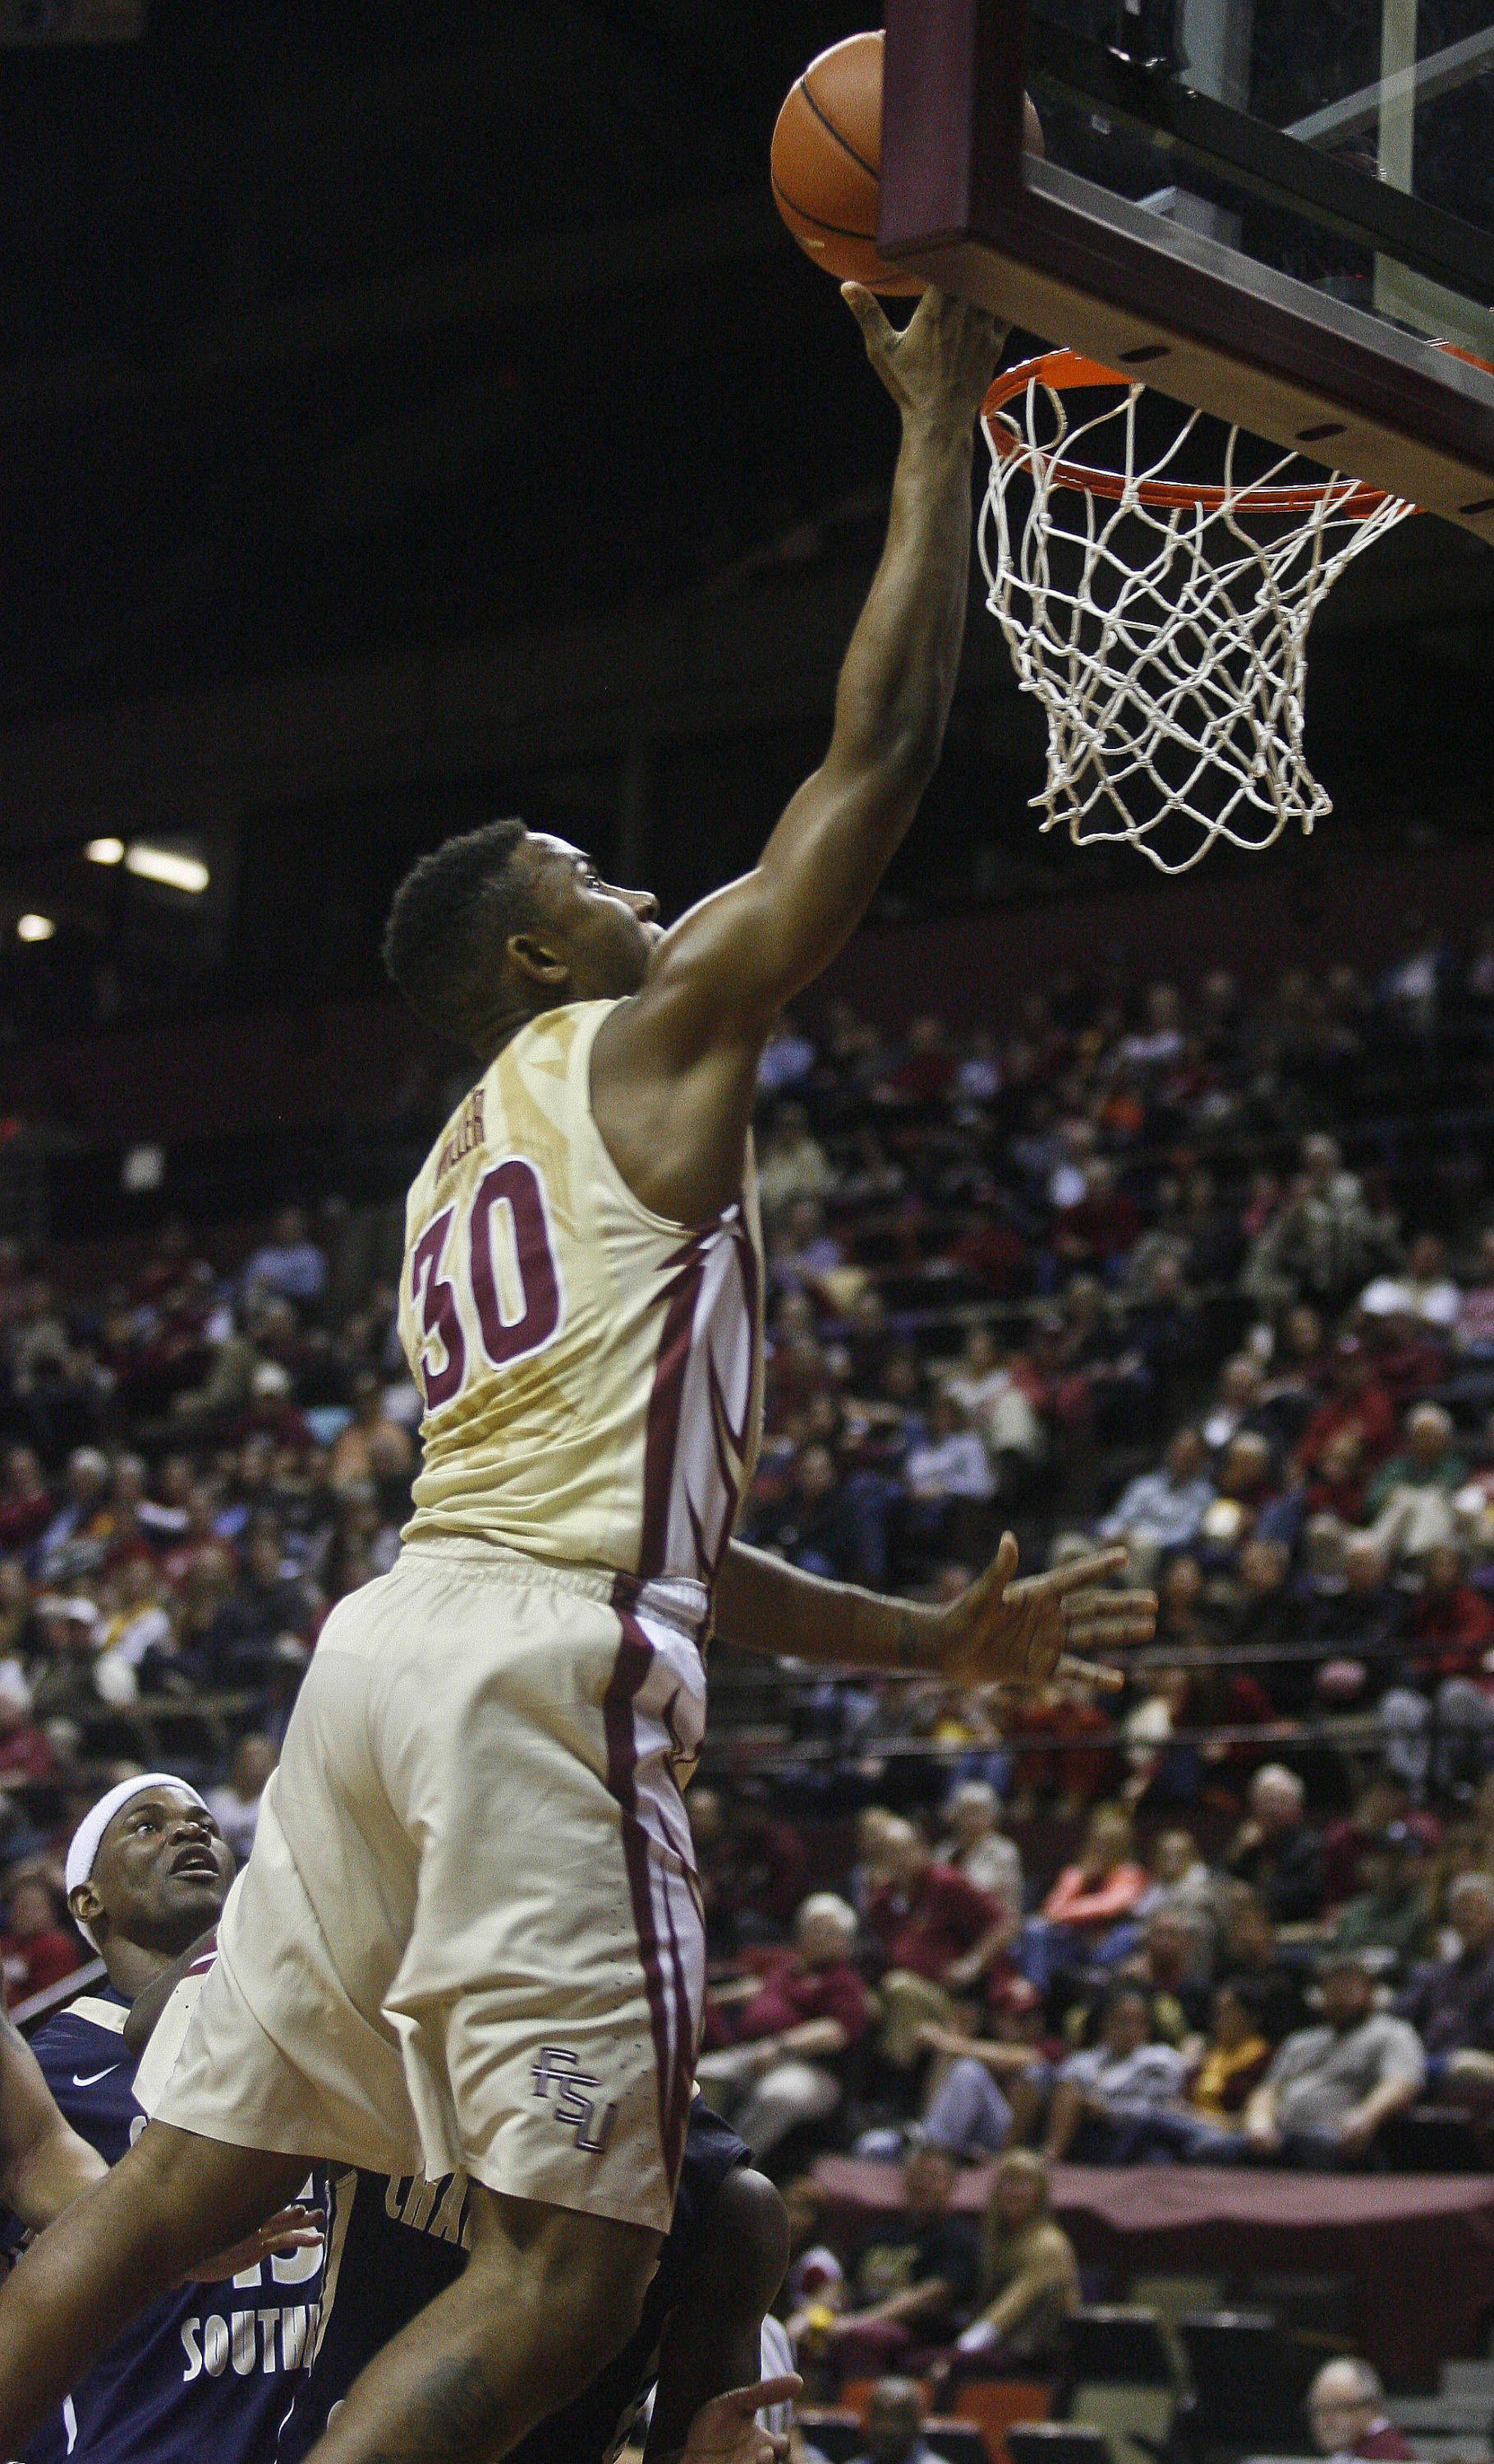 Florida State Seminoles guard Ian Miller (30) shoots the ball in the first half. (Phil Sears-USA TODAY Sports)